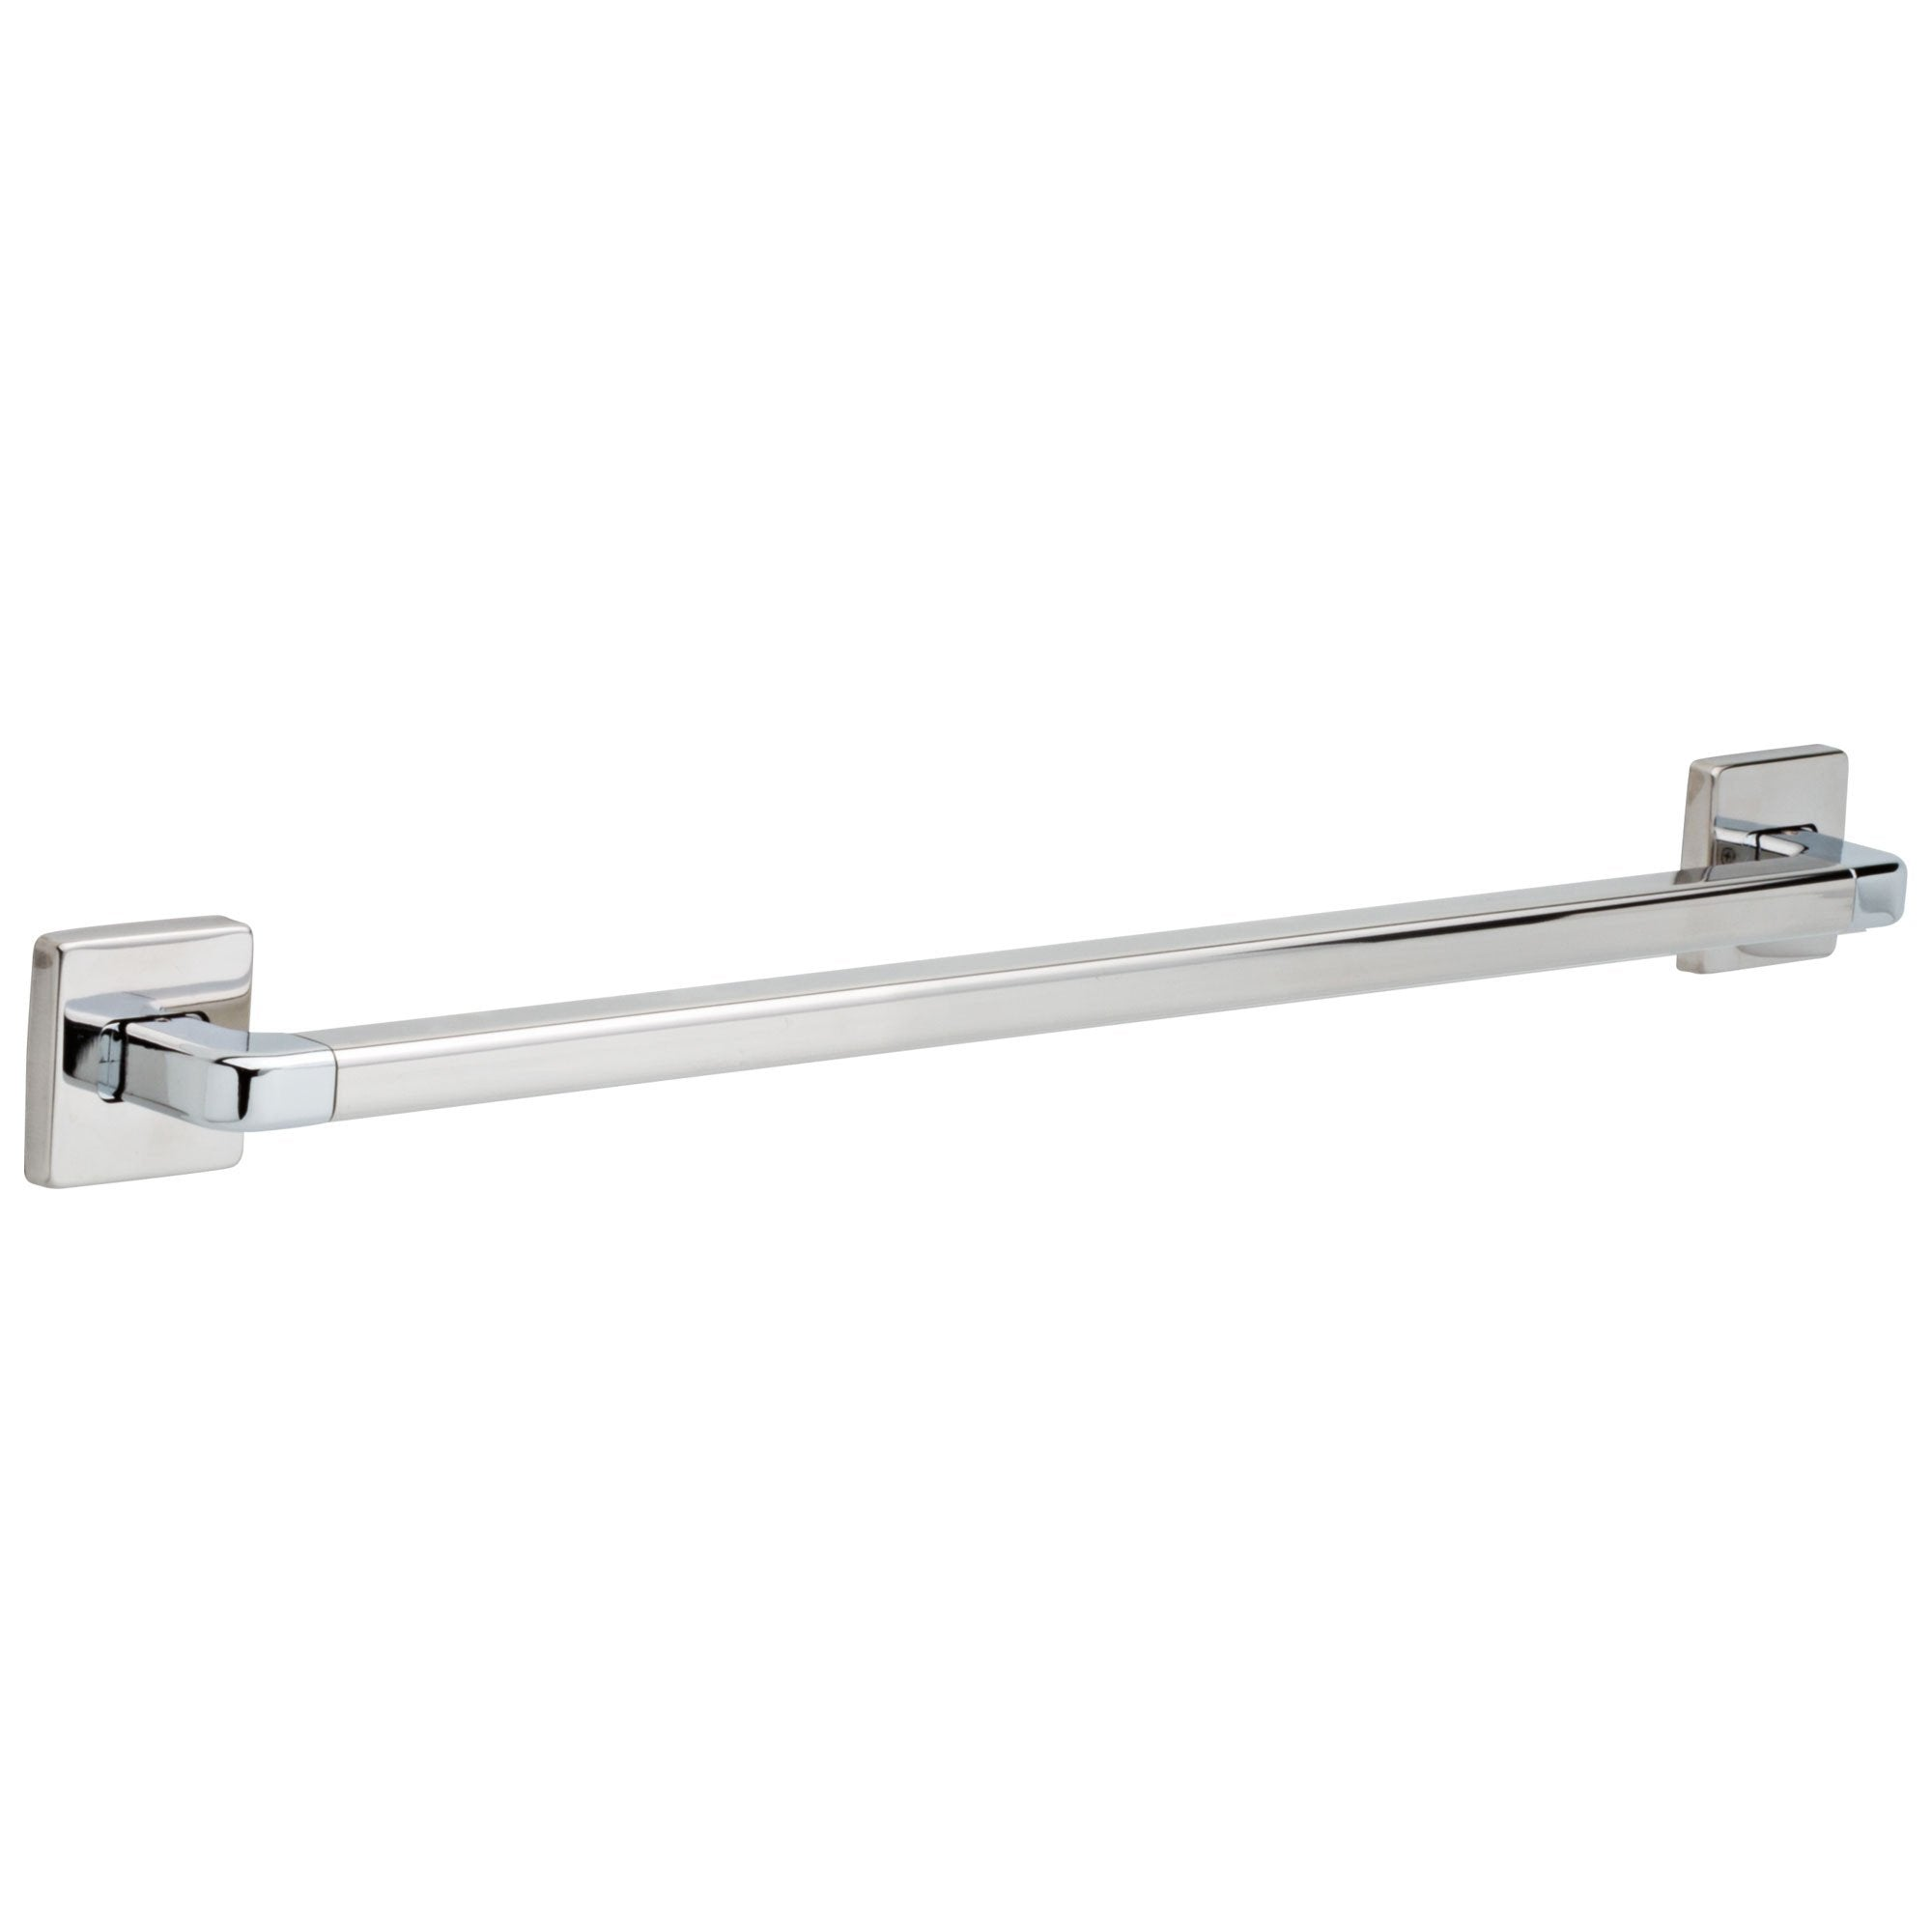 "Delta Bath Safety Collection Chrome Finish Angular Modern Decorative ADA Approved Wall Mount 24"" Grab Bar D41924"